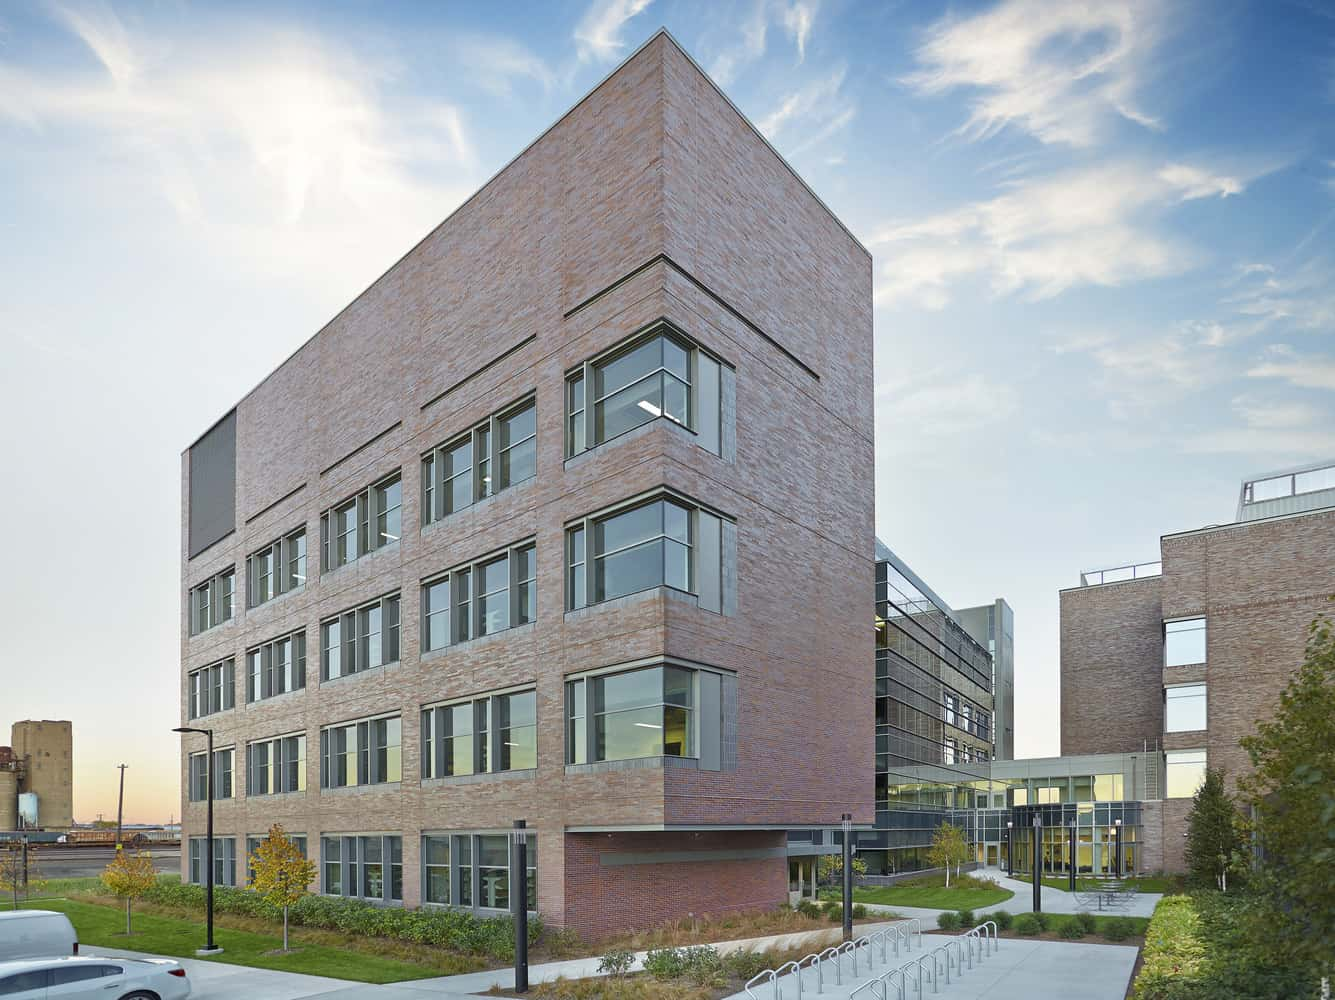 University of Minnesota Microbiology Research Facility